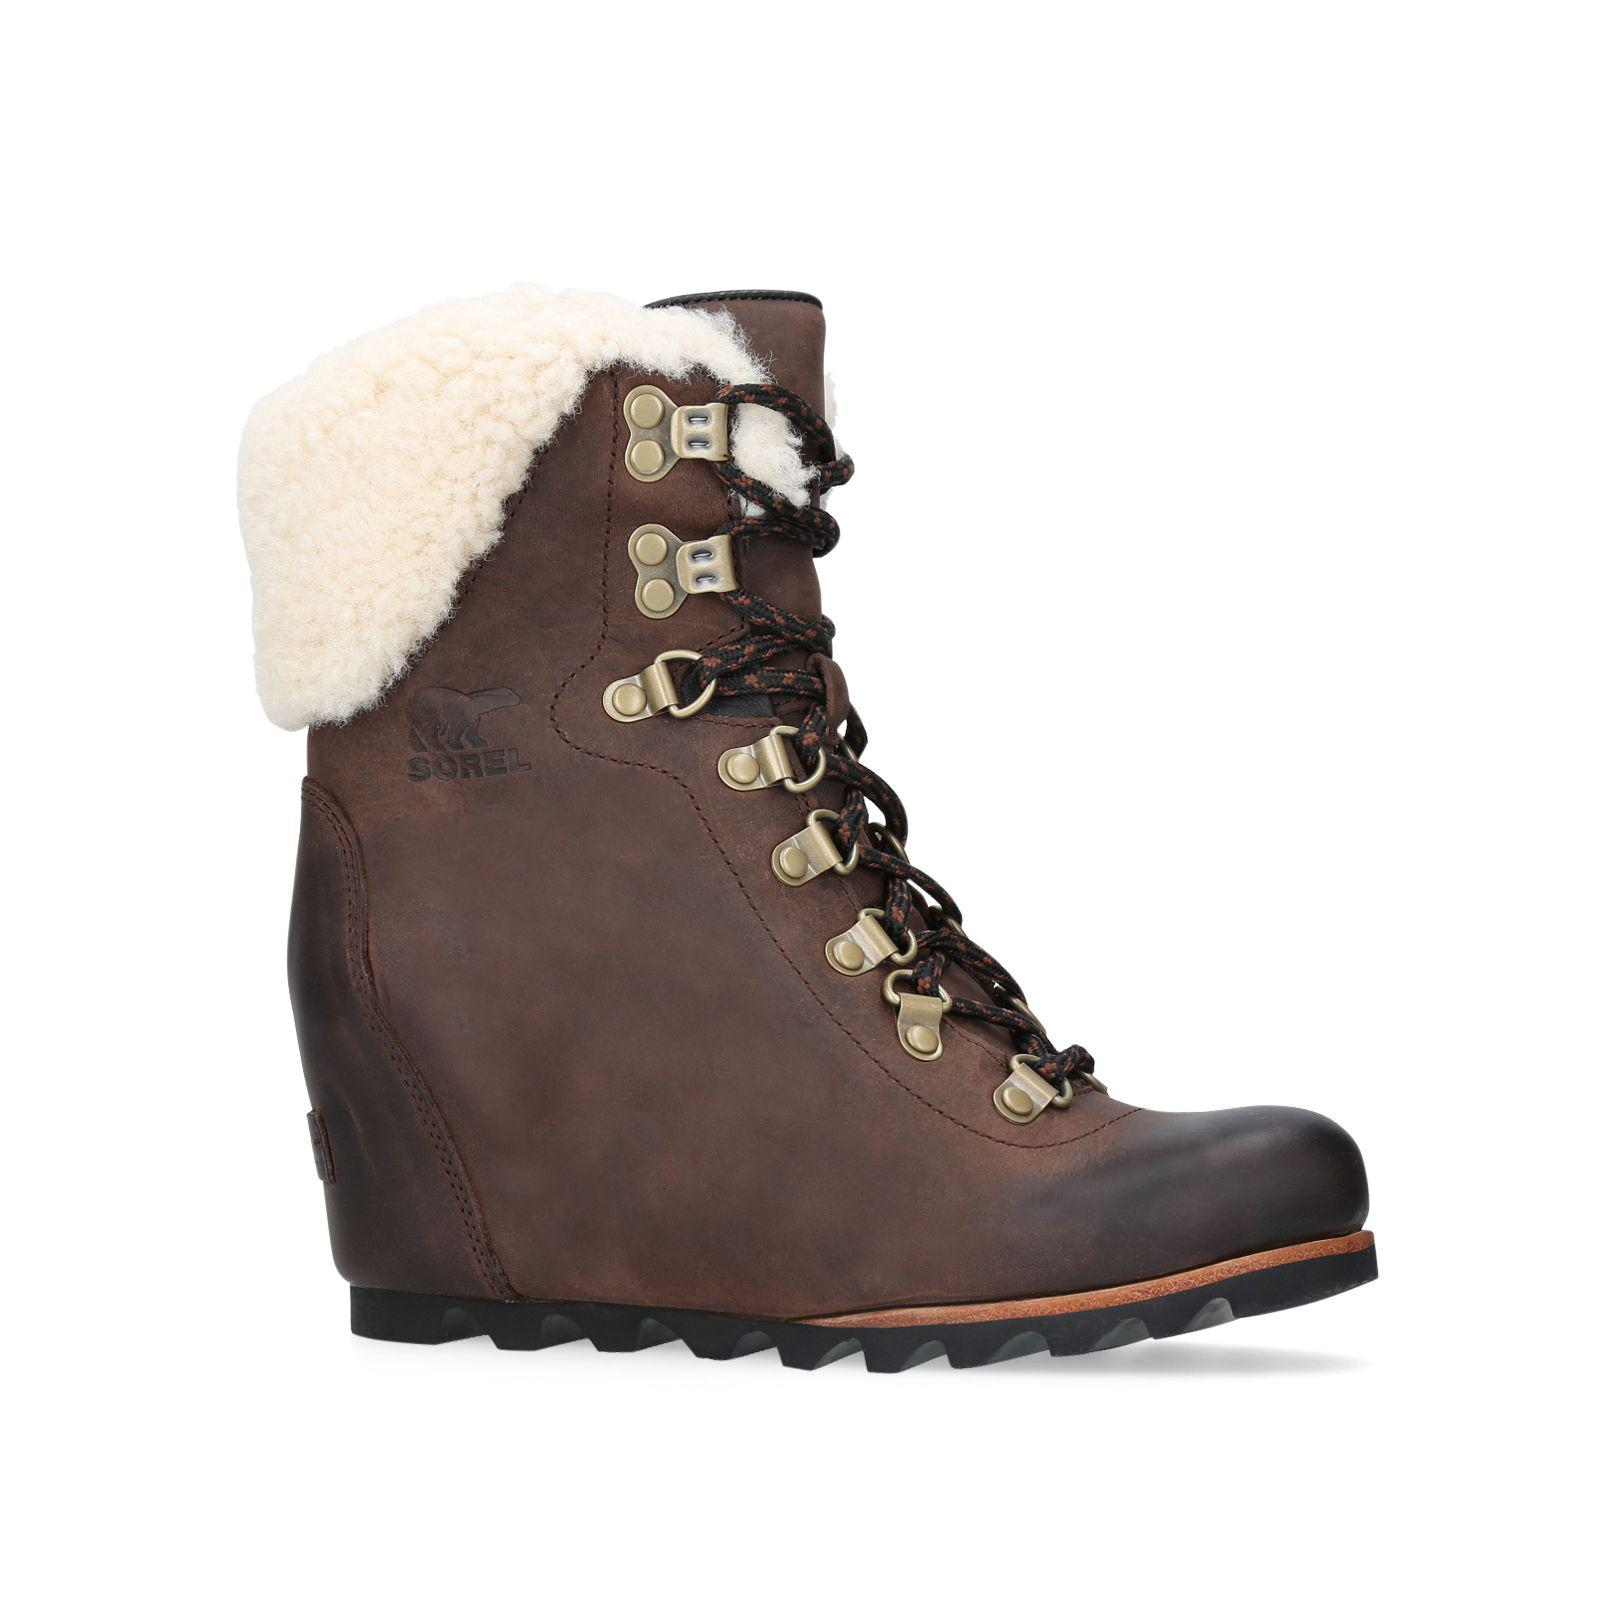 Cheap Sale Low Shipping Fee sorel CONQUEST WEDGE women's Low Ankle Boots in 100% Original Sale Online Free Shipping Cheapest Buy Cheap Finishline Cheap Sale New Arrival 3DlrFm